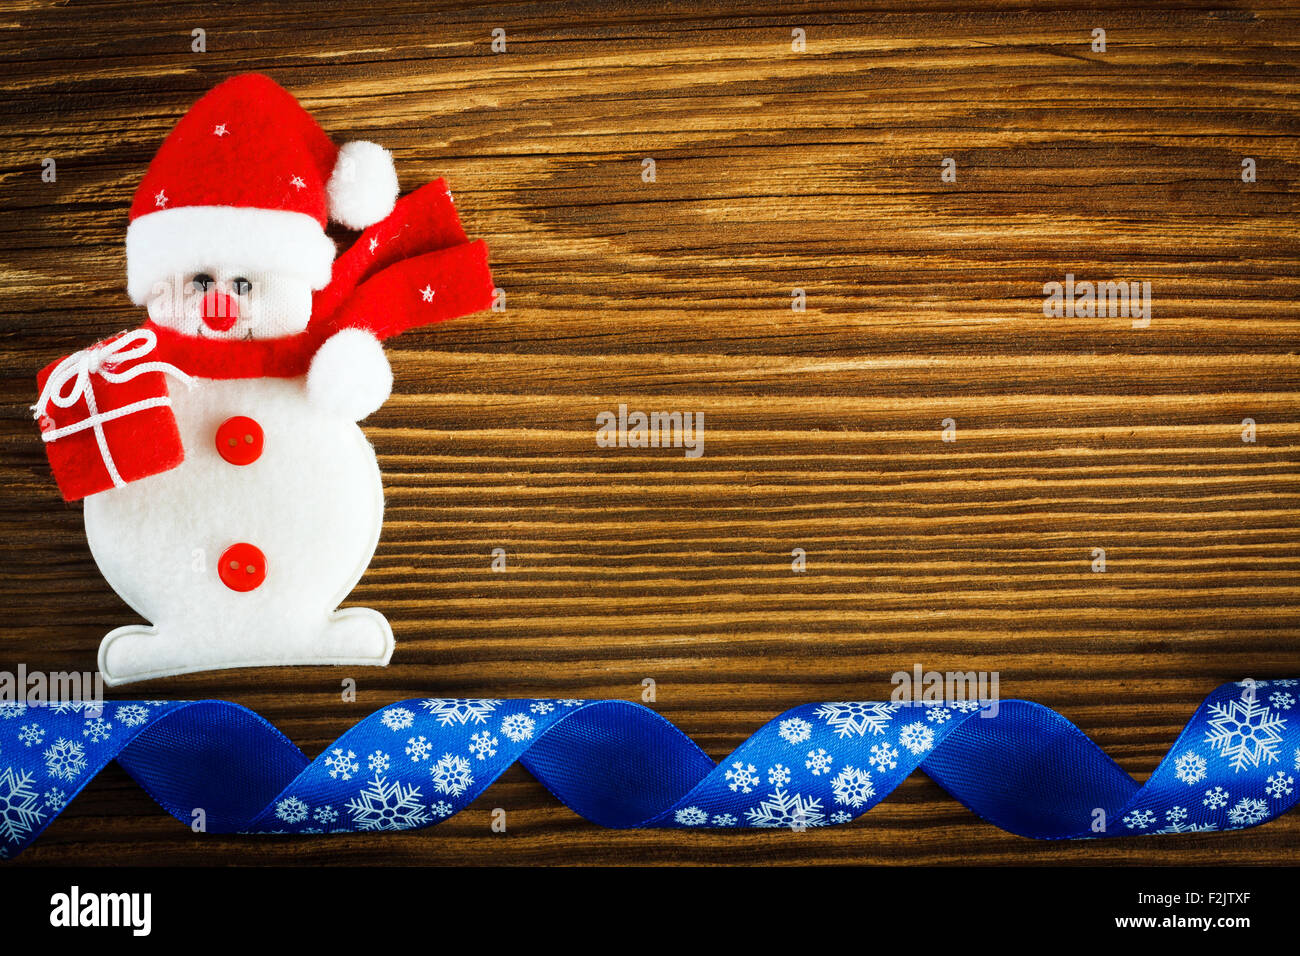 Christmas background - snowman and blue ribbon on wooden table - Stock Image